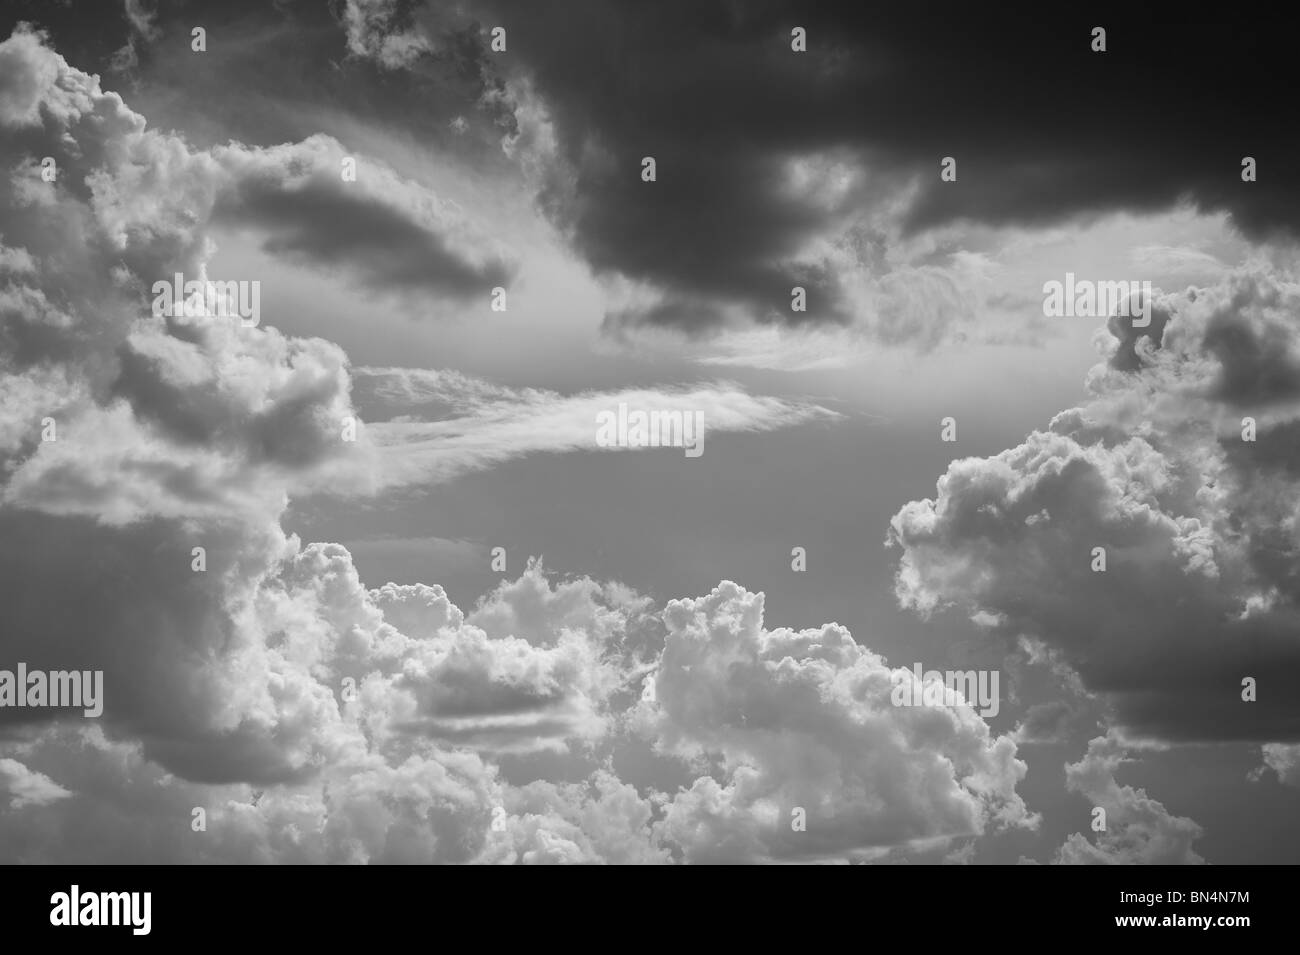 Black and White Sky and Clouds - Stock Image